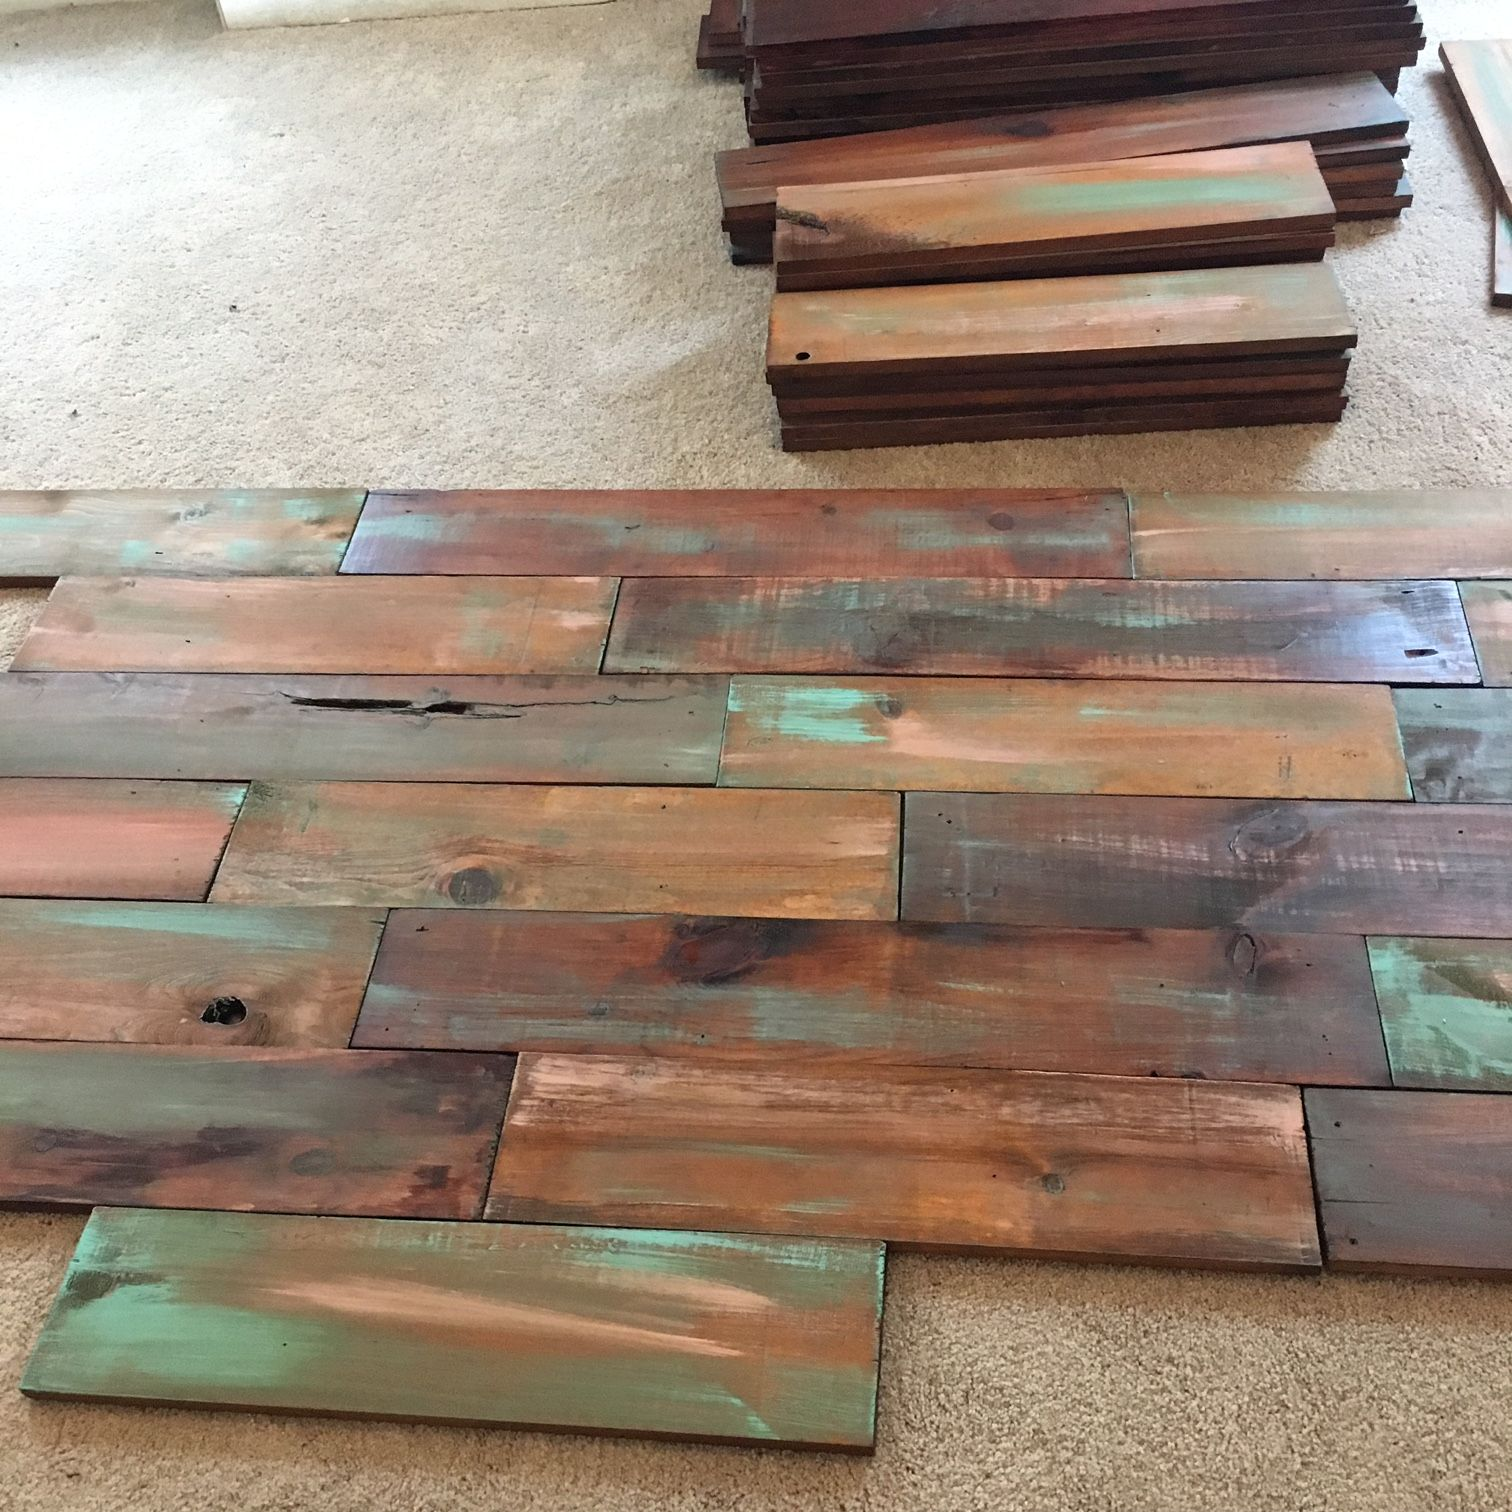 Accent Pallets Planks On A Painted Wall: I Cleaned, Stained And Added Coral/teal Paint To These